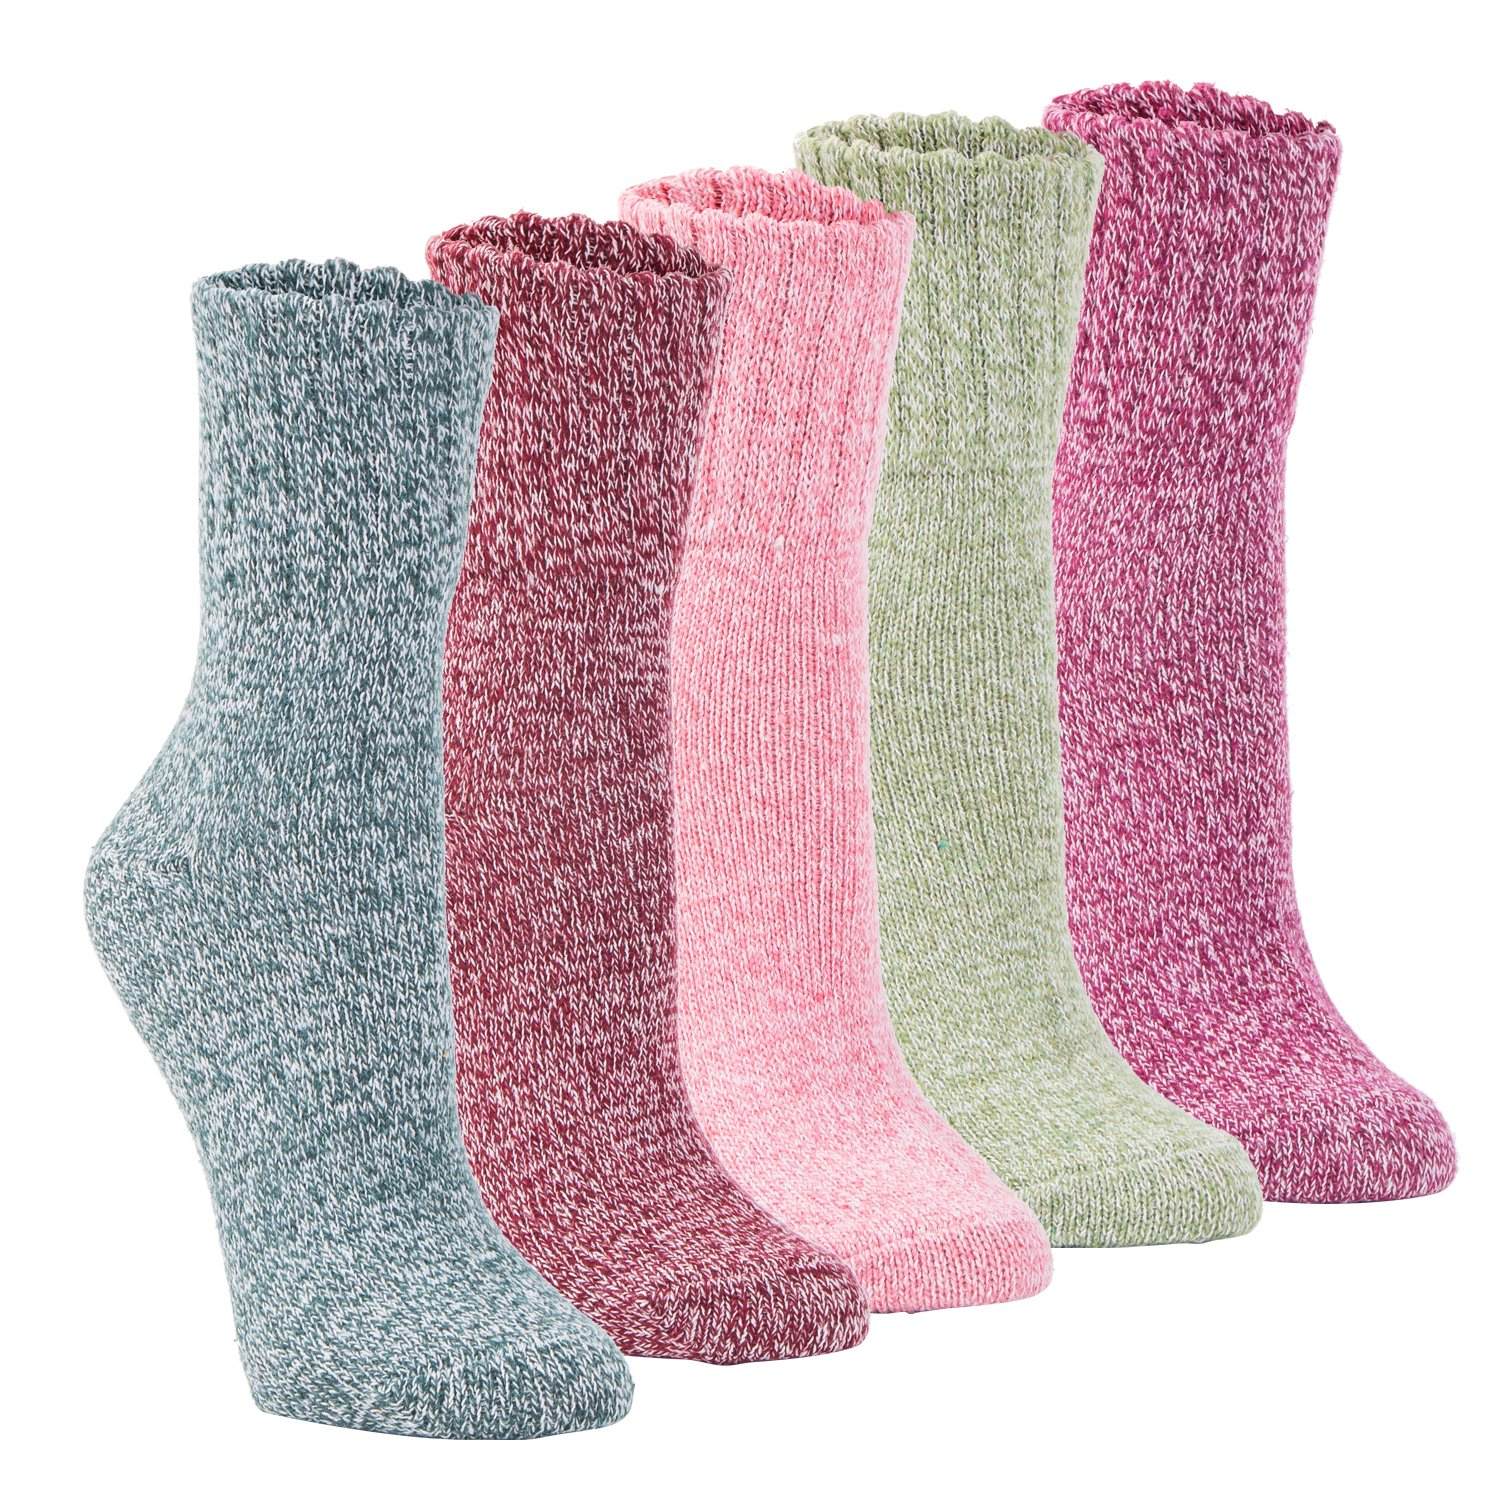 Yannik Women's 5 Pair Pack Vintage Style Cotton Knitting Wool Winter Crew Socks